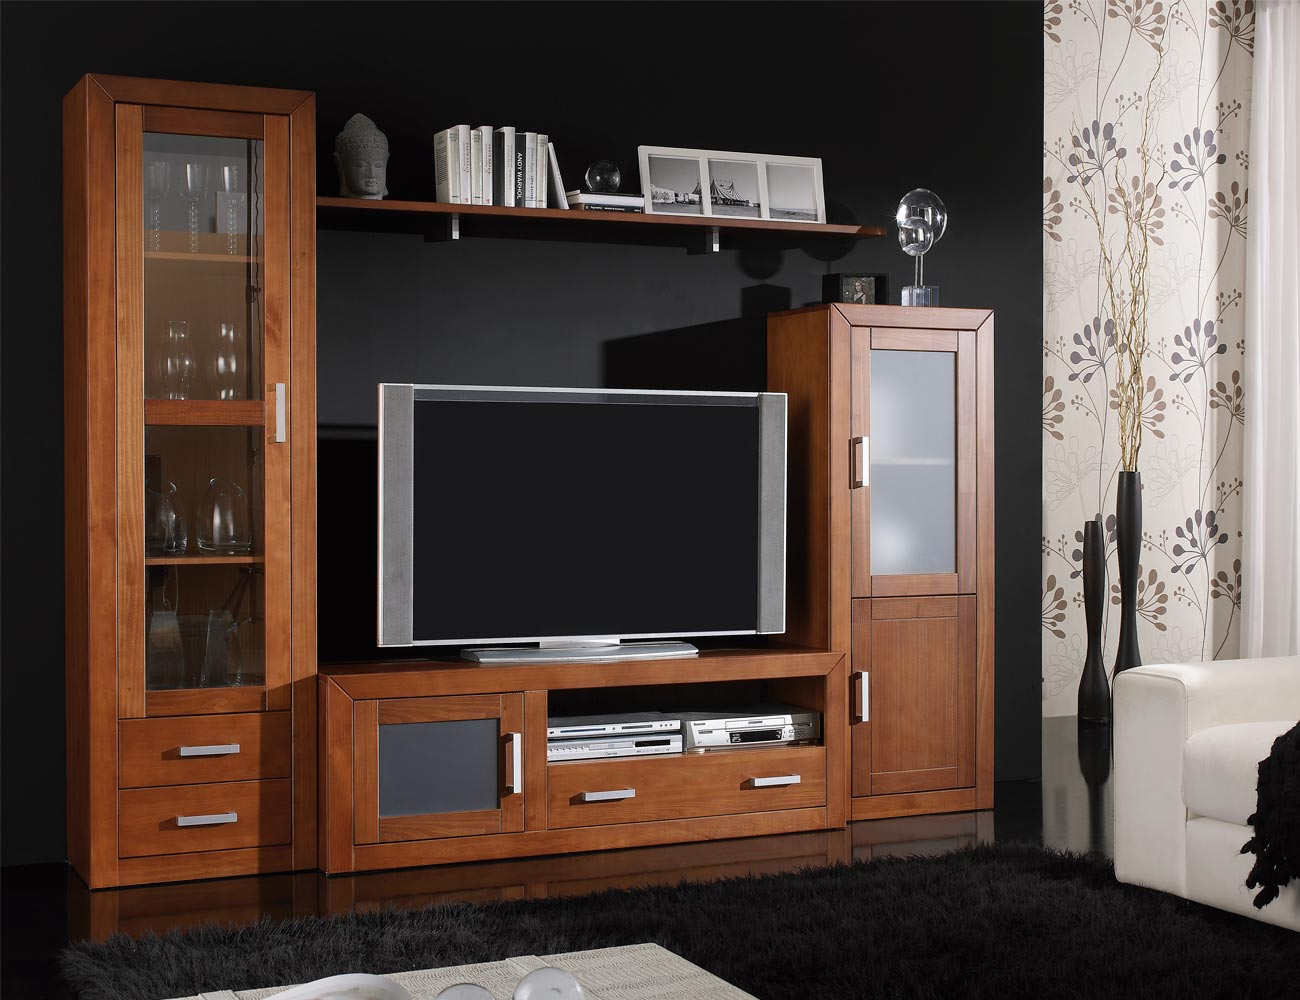 Mueble salon colonial mueble salon moderno wengue with mueble salon colonial modulares - Mueble salon tv ...